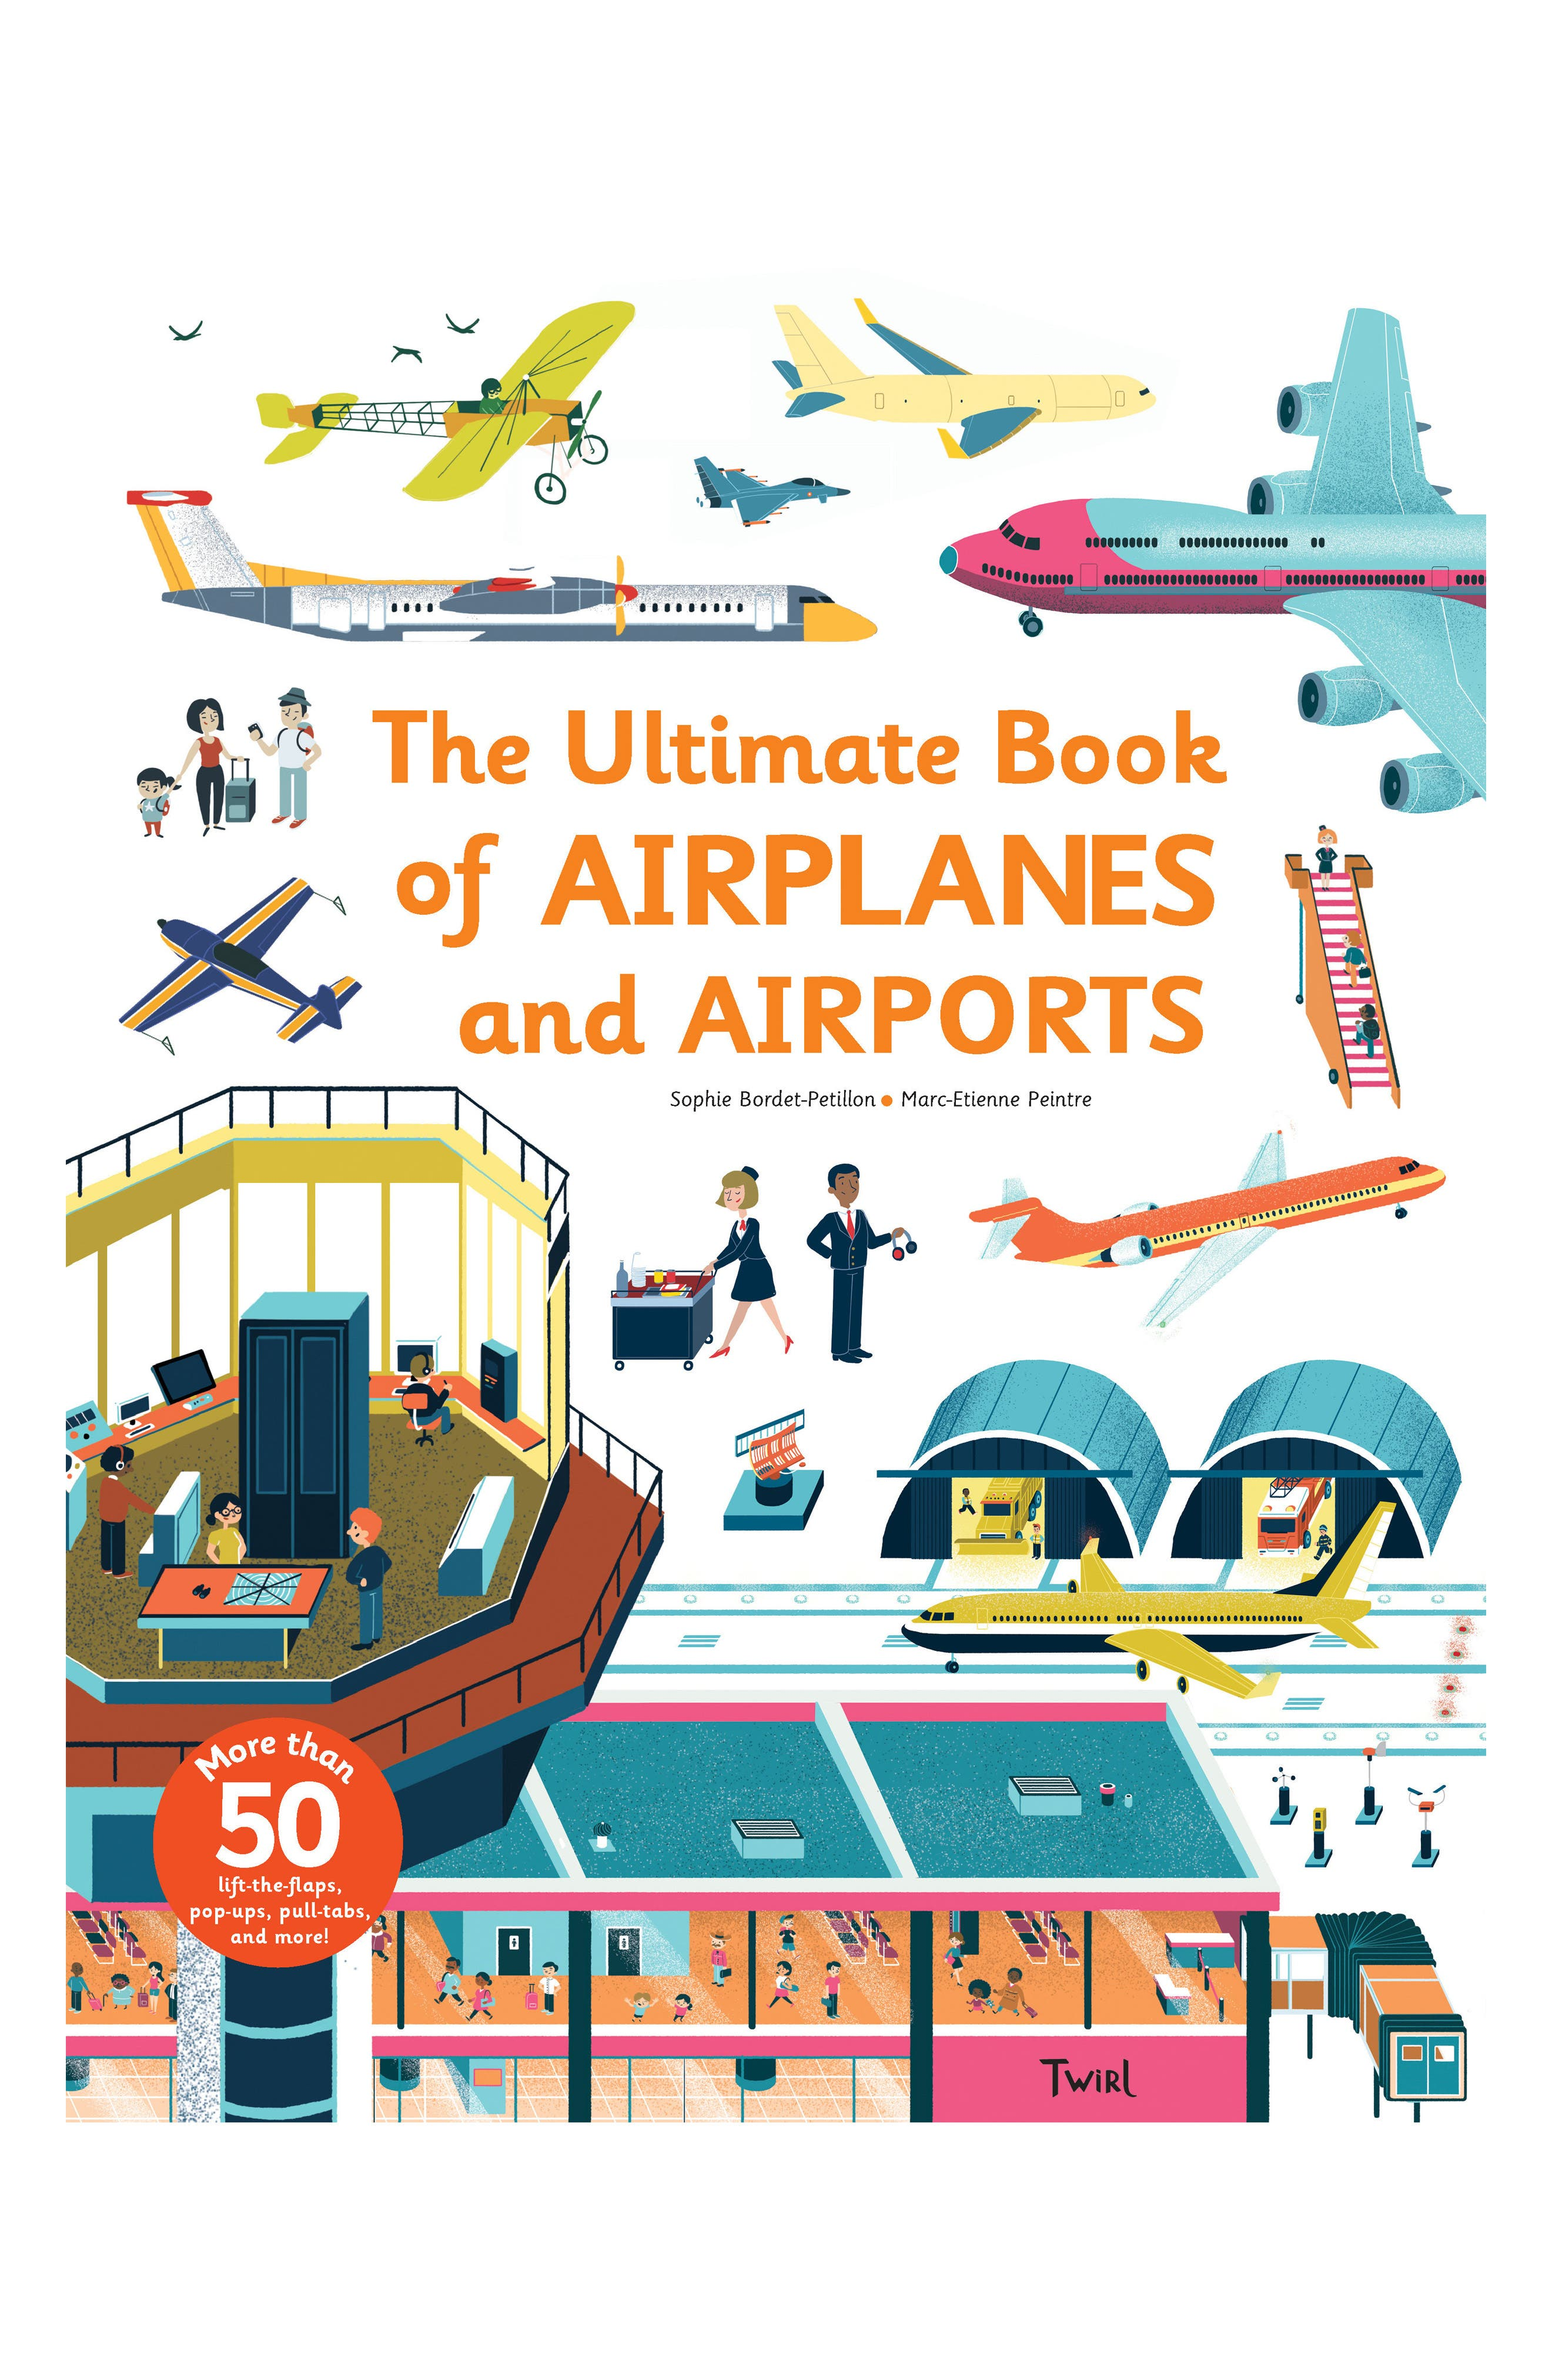 The Ultimate Book of Airplanes